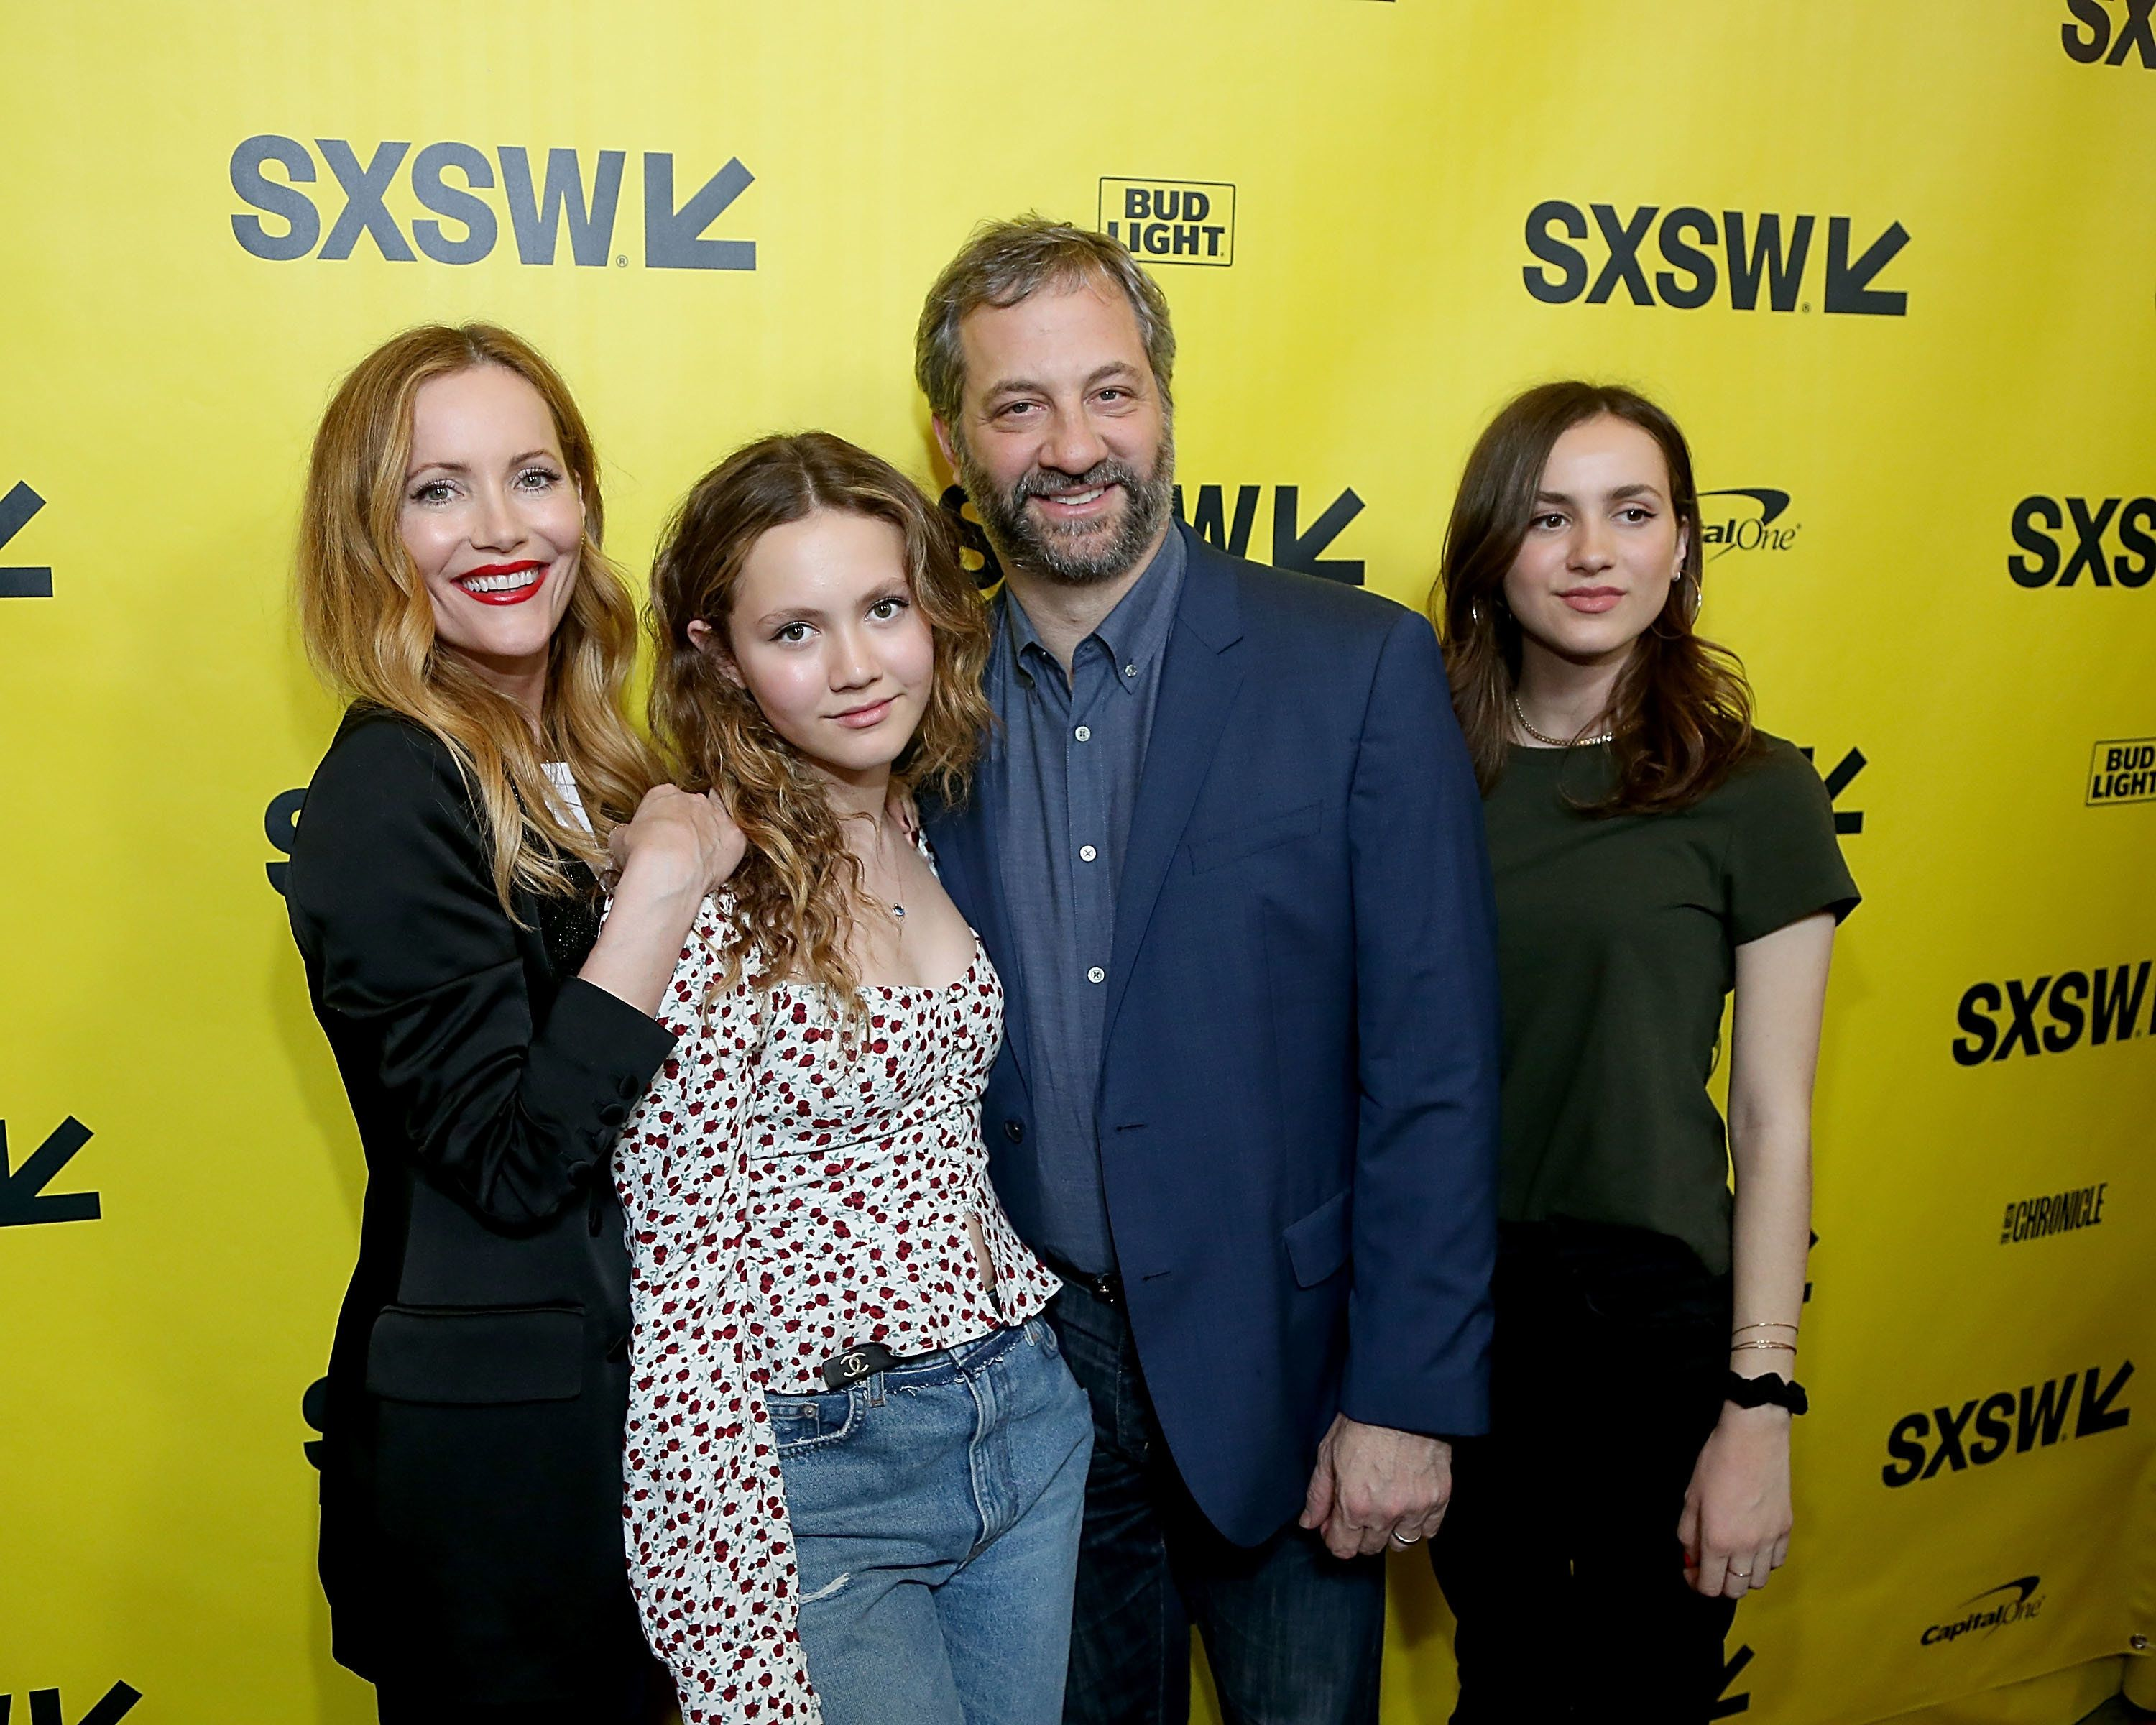 Judd Apatow and Leslie Mann have two daughters, Iris, center, and Maude.